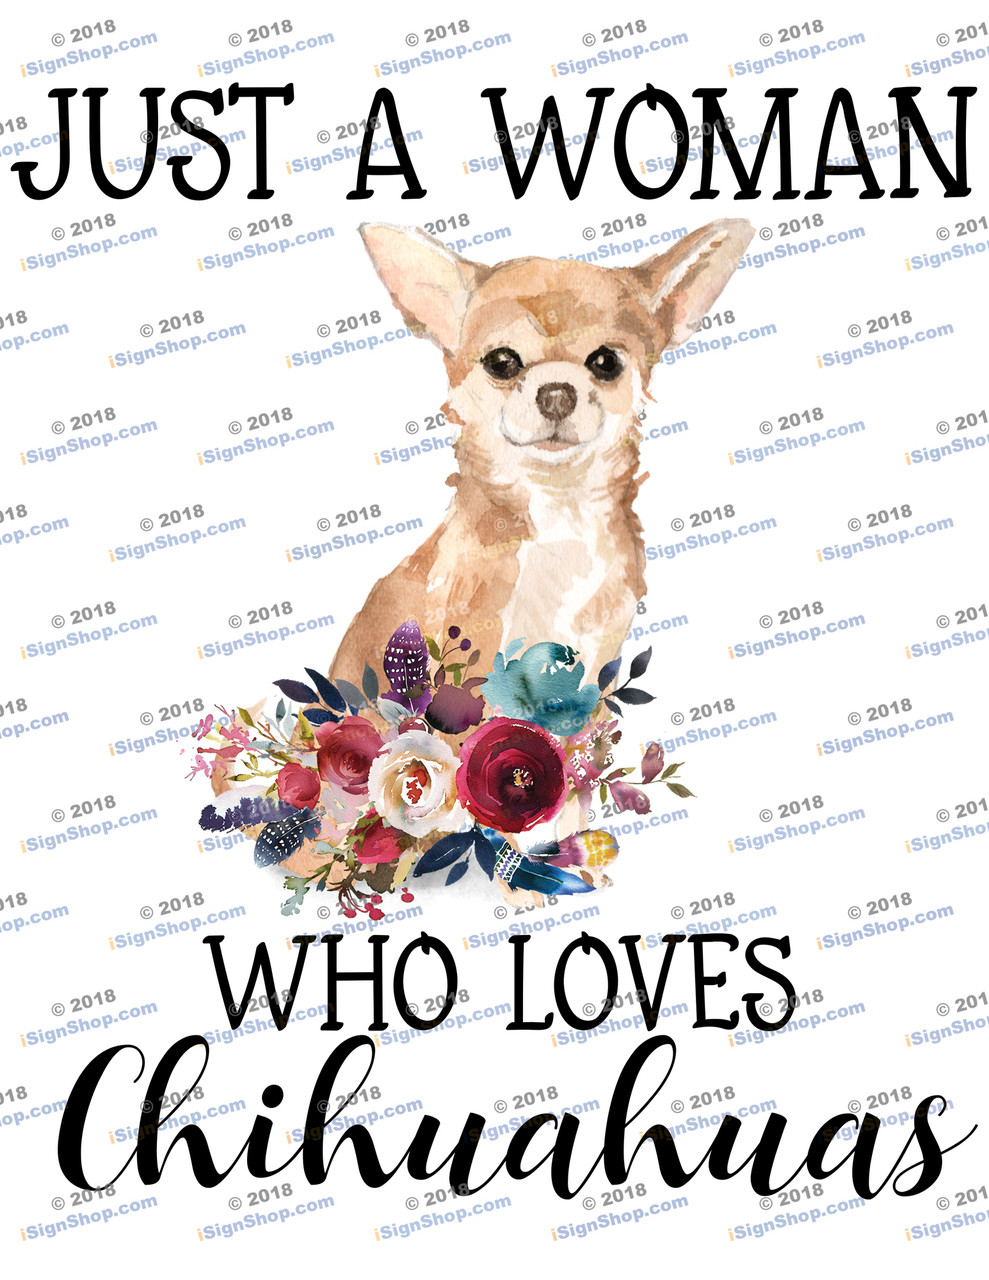 Just a woman who loves Chihuahuas Sublimation Print